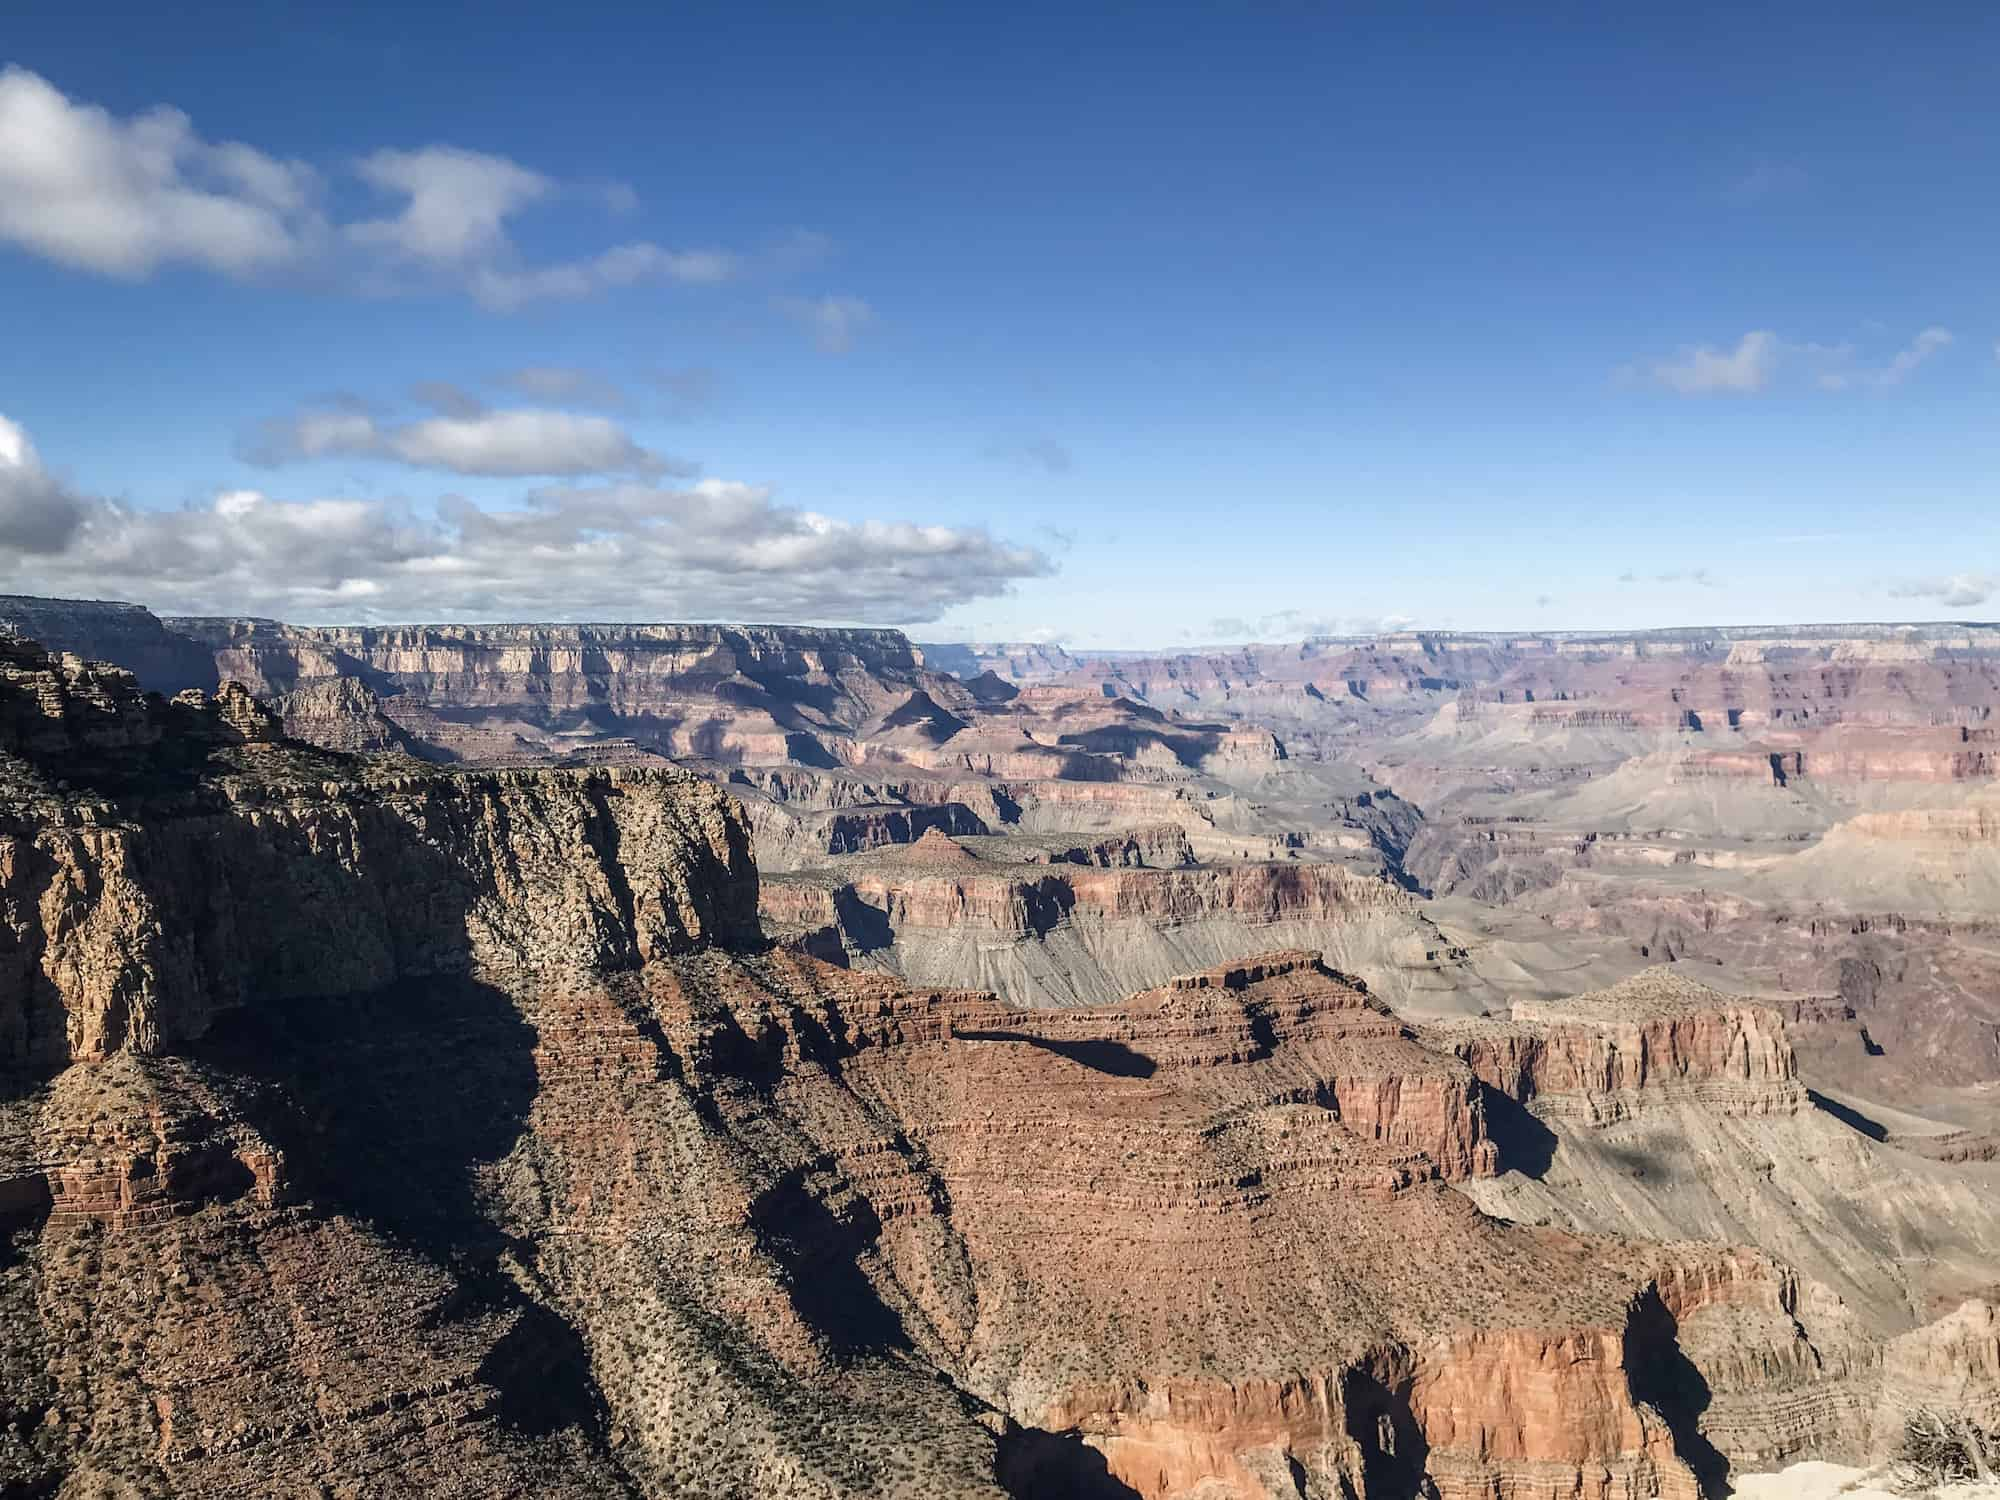 Grand Canyon National Park in Arizona is cool to see even during the winter